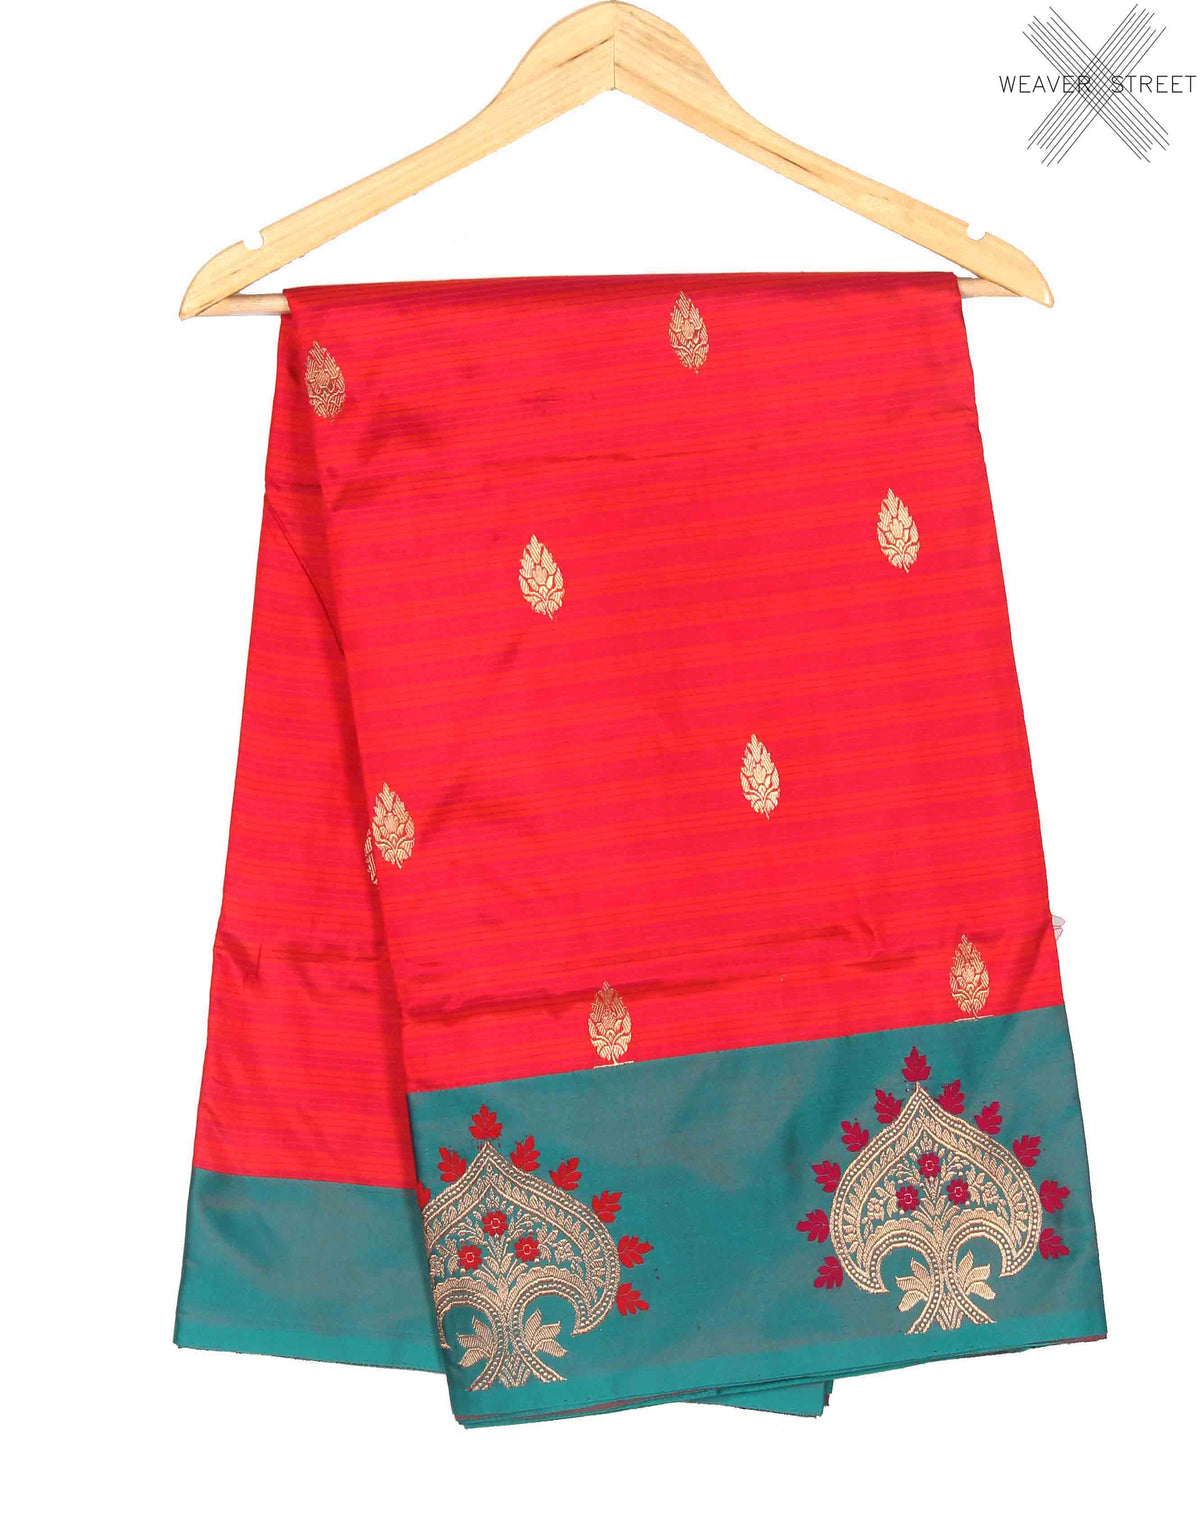 Red Katan Silk Handwoven Banarasi saree with kalgi border (1) Main